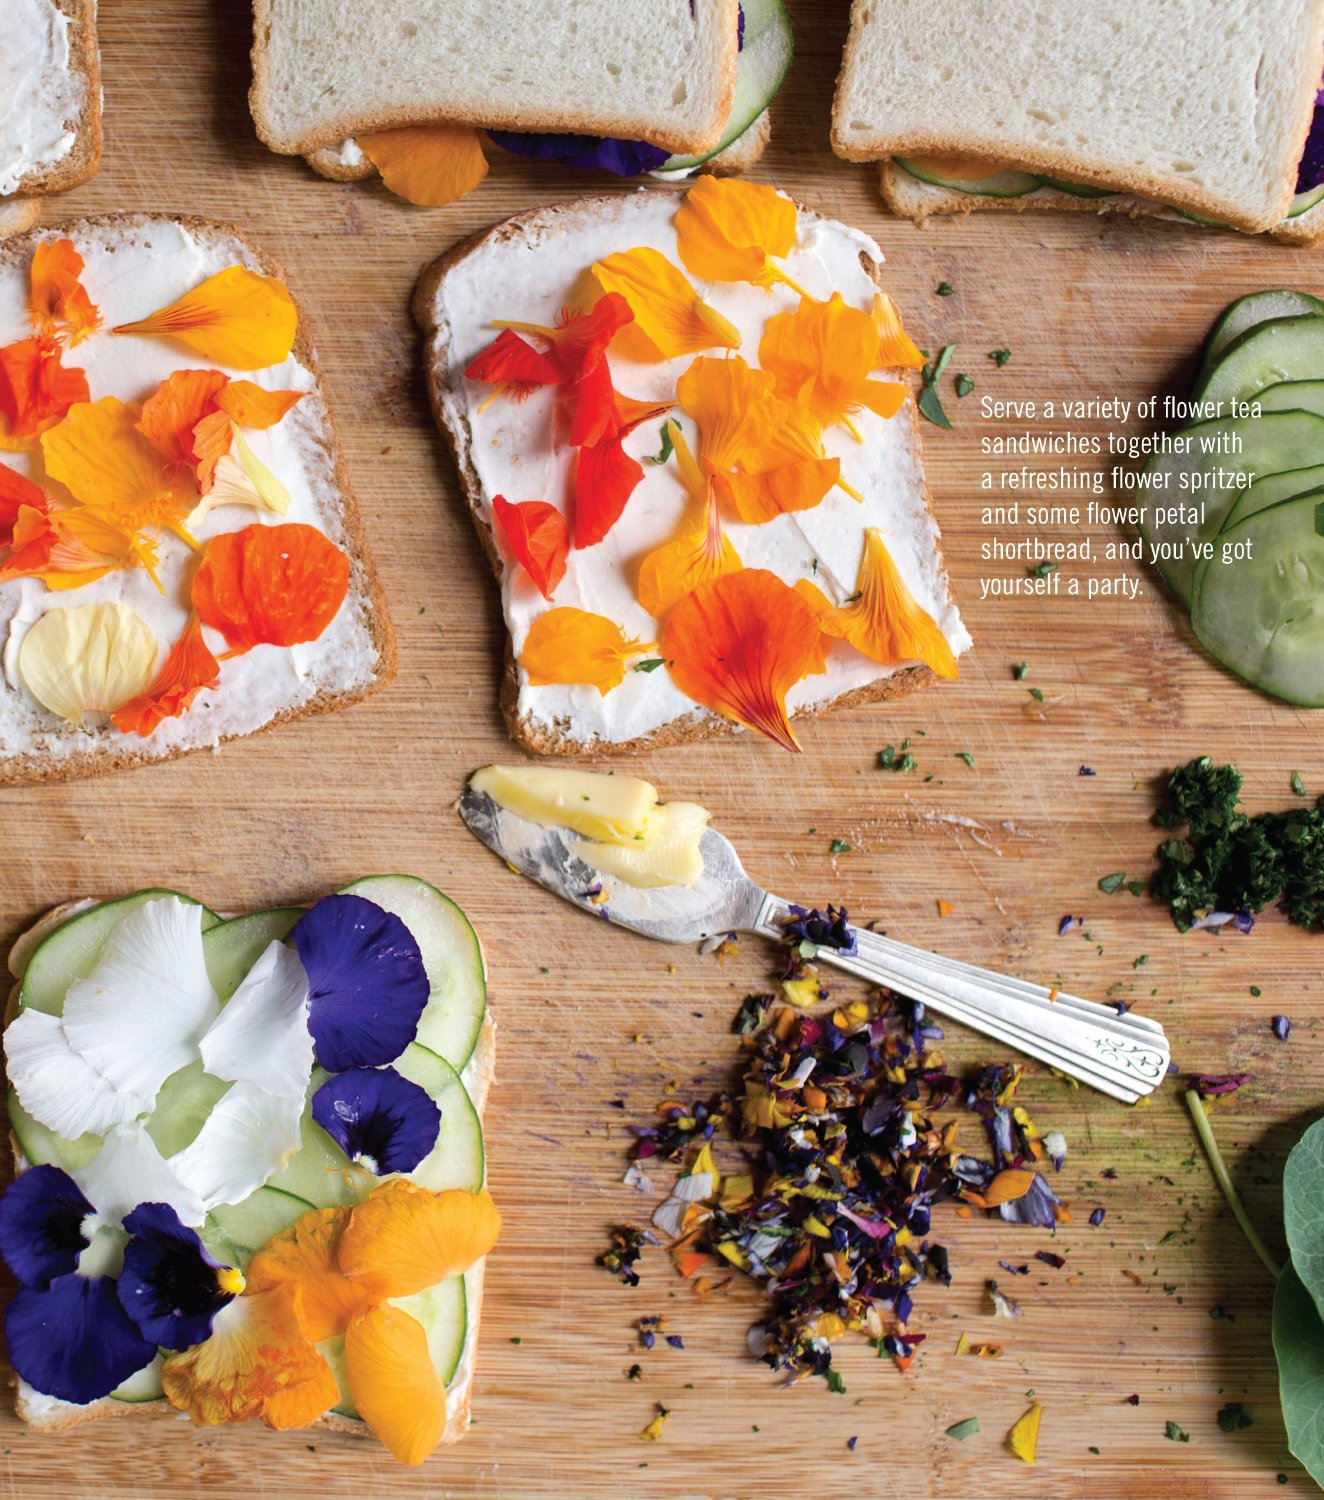 Flower Tea Sandwiches